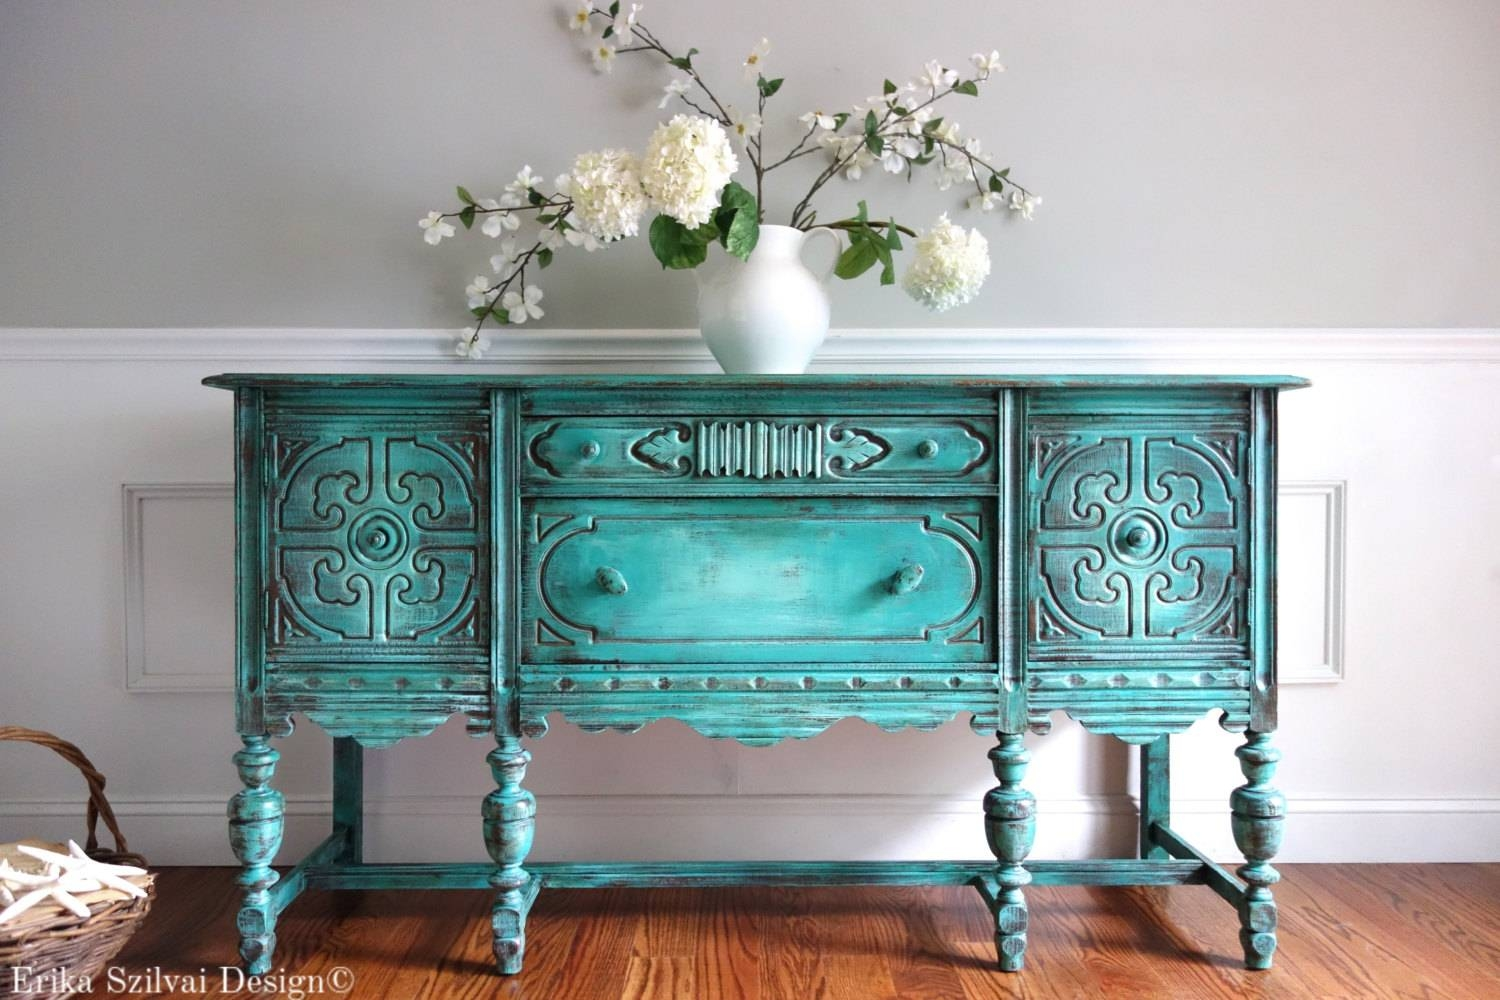 Antique Distressed Weathered Turquoise Sideboard | Everything intended for Distressed Sideboards And Buffets (Image 2 of 15)